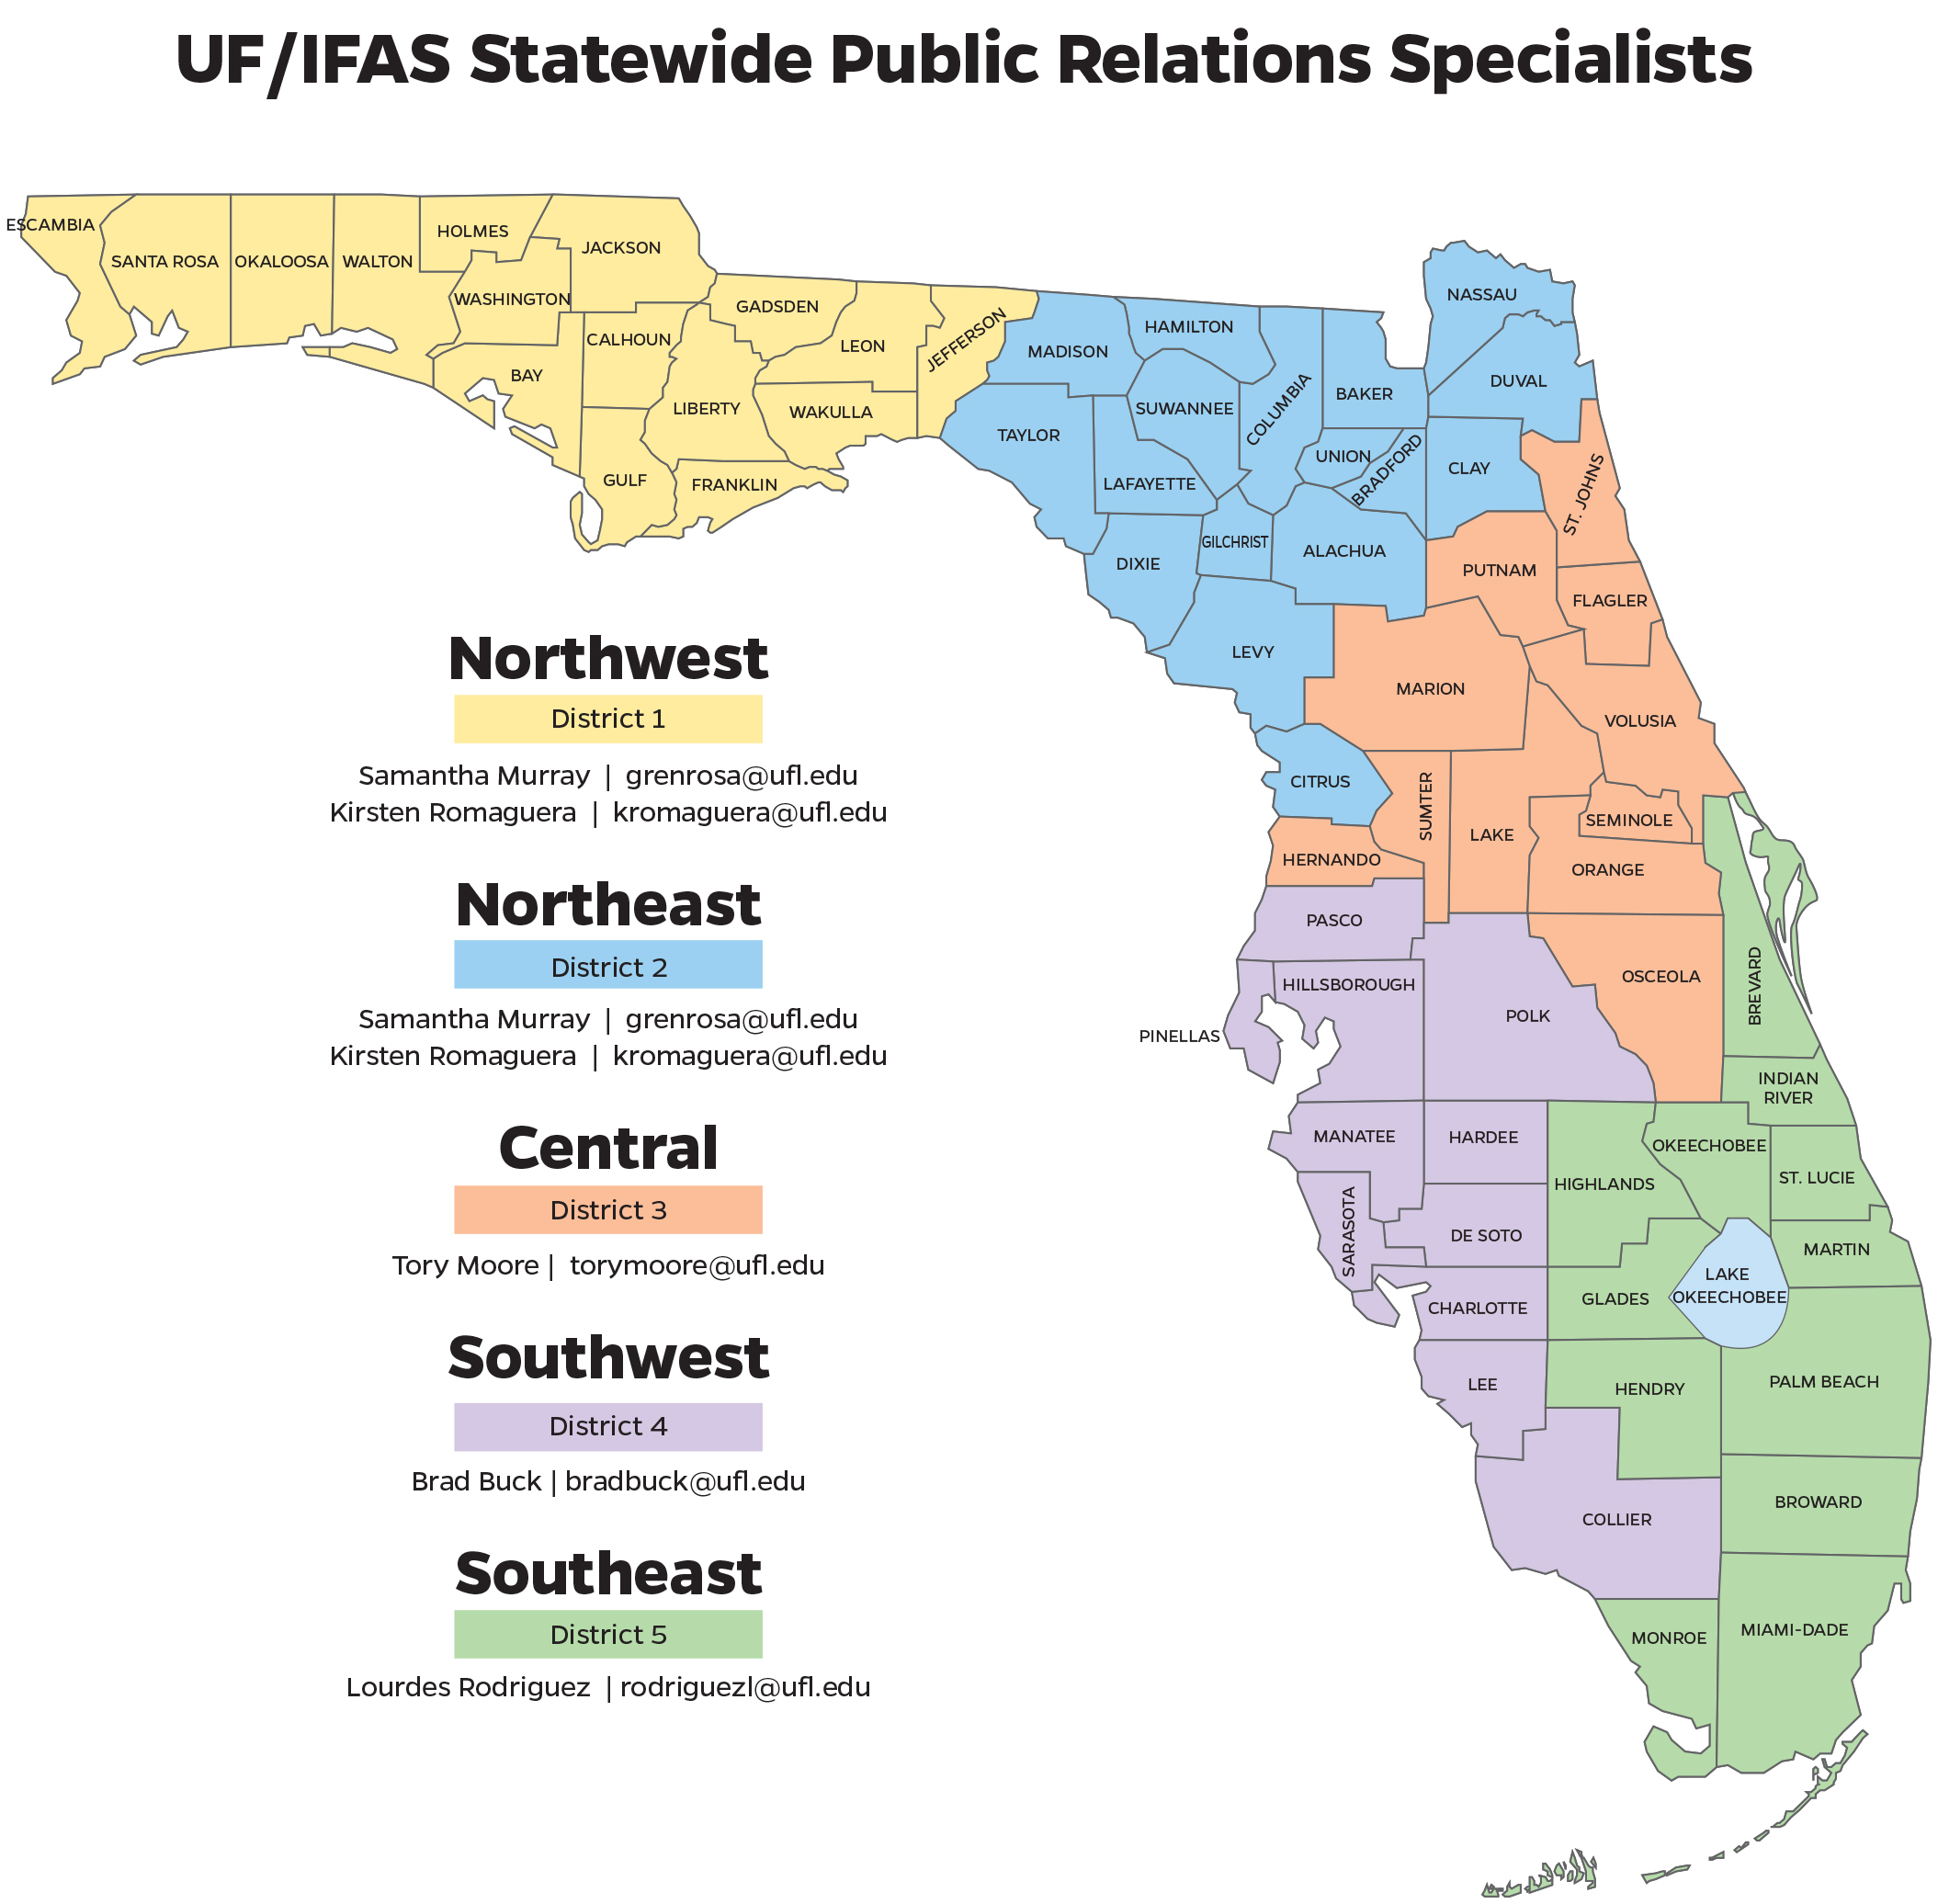 UF/IFAS PR Specialists Map